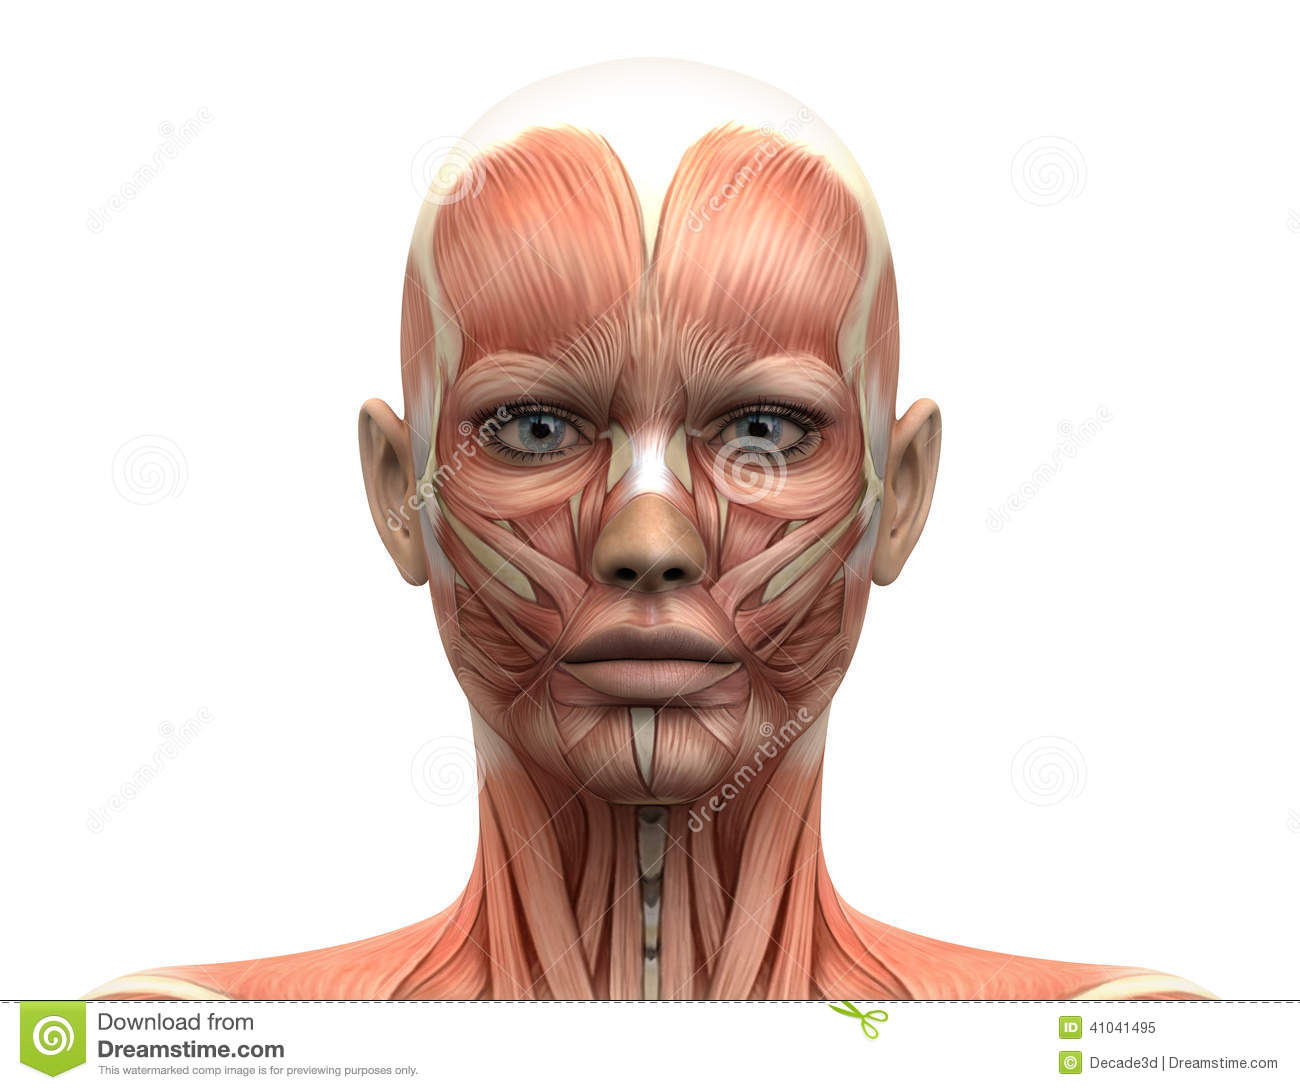 Facial Palsy Amp Physiotherapy Treatmemt Mobile Physiotherapy Clinic Ahmedabad Gujarat